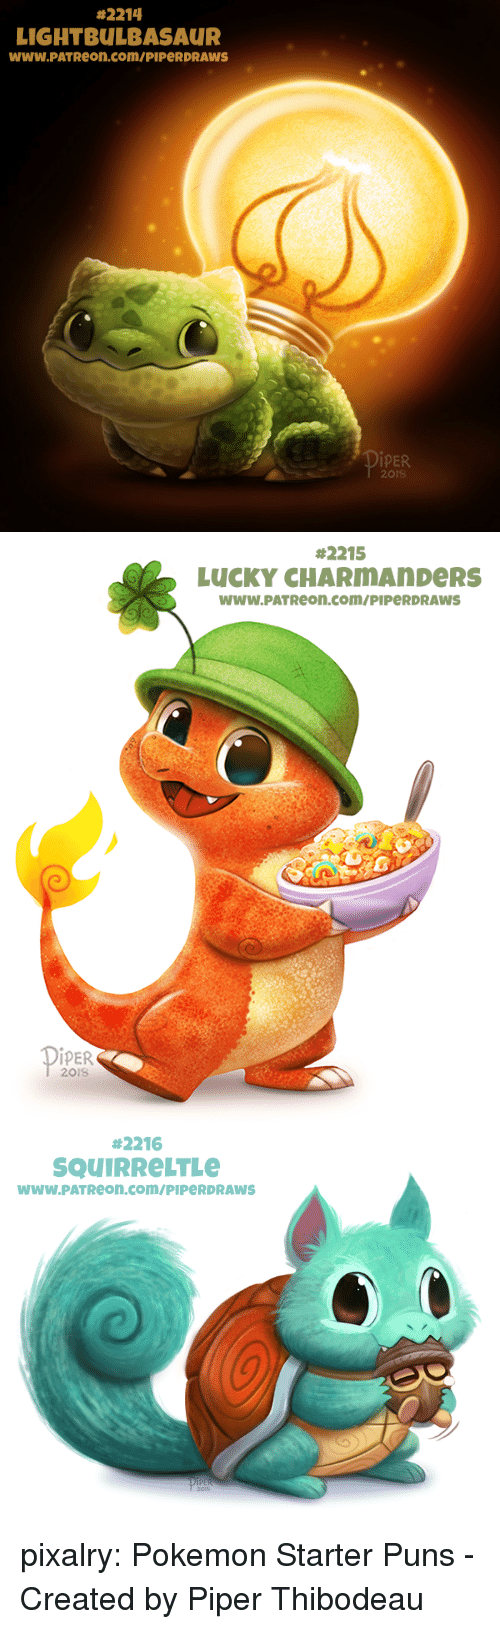 creations:  #2214  LIGHTBULBASAUR  www.PATReon.com/PIPeRDRAWS  İPER  201S   #2215  LUCKY CHARMAnDeRS  WWW.PATReon.com/PIPeRDRAWS  İPER  201S   #2216  SQUIRReLTLe  wwW.PATReon.com/PIPeRDRAWS pixalry:  Pokemon Starter Puns - Created by Piper Thibodeau